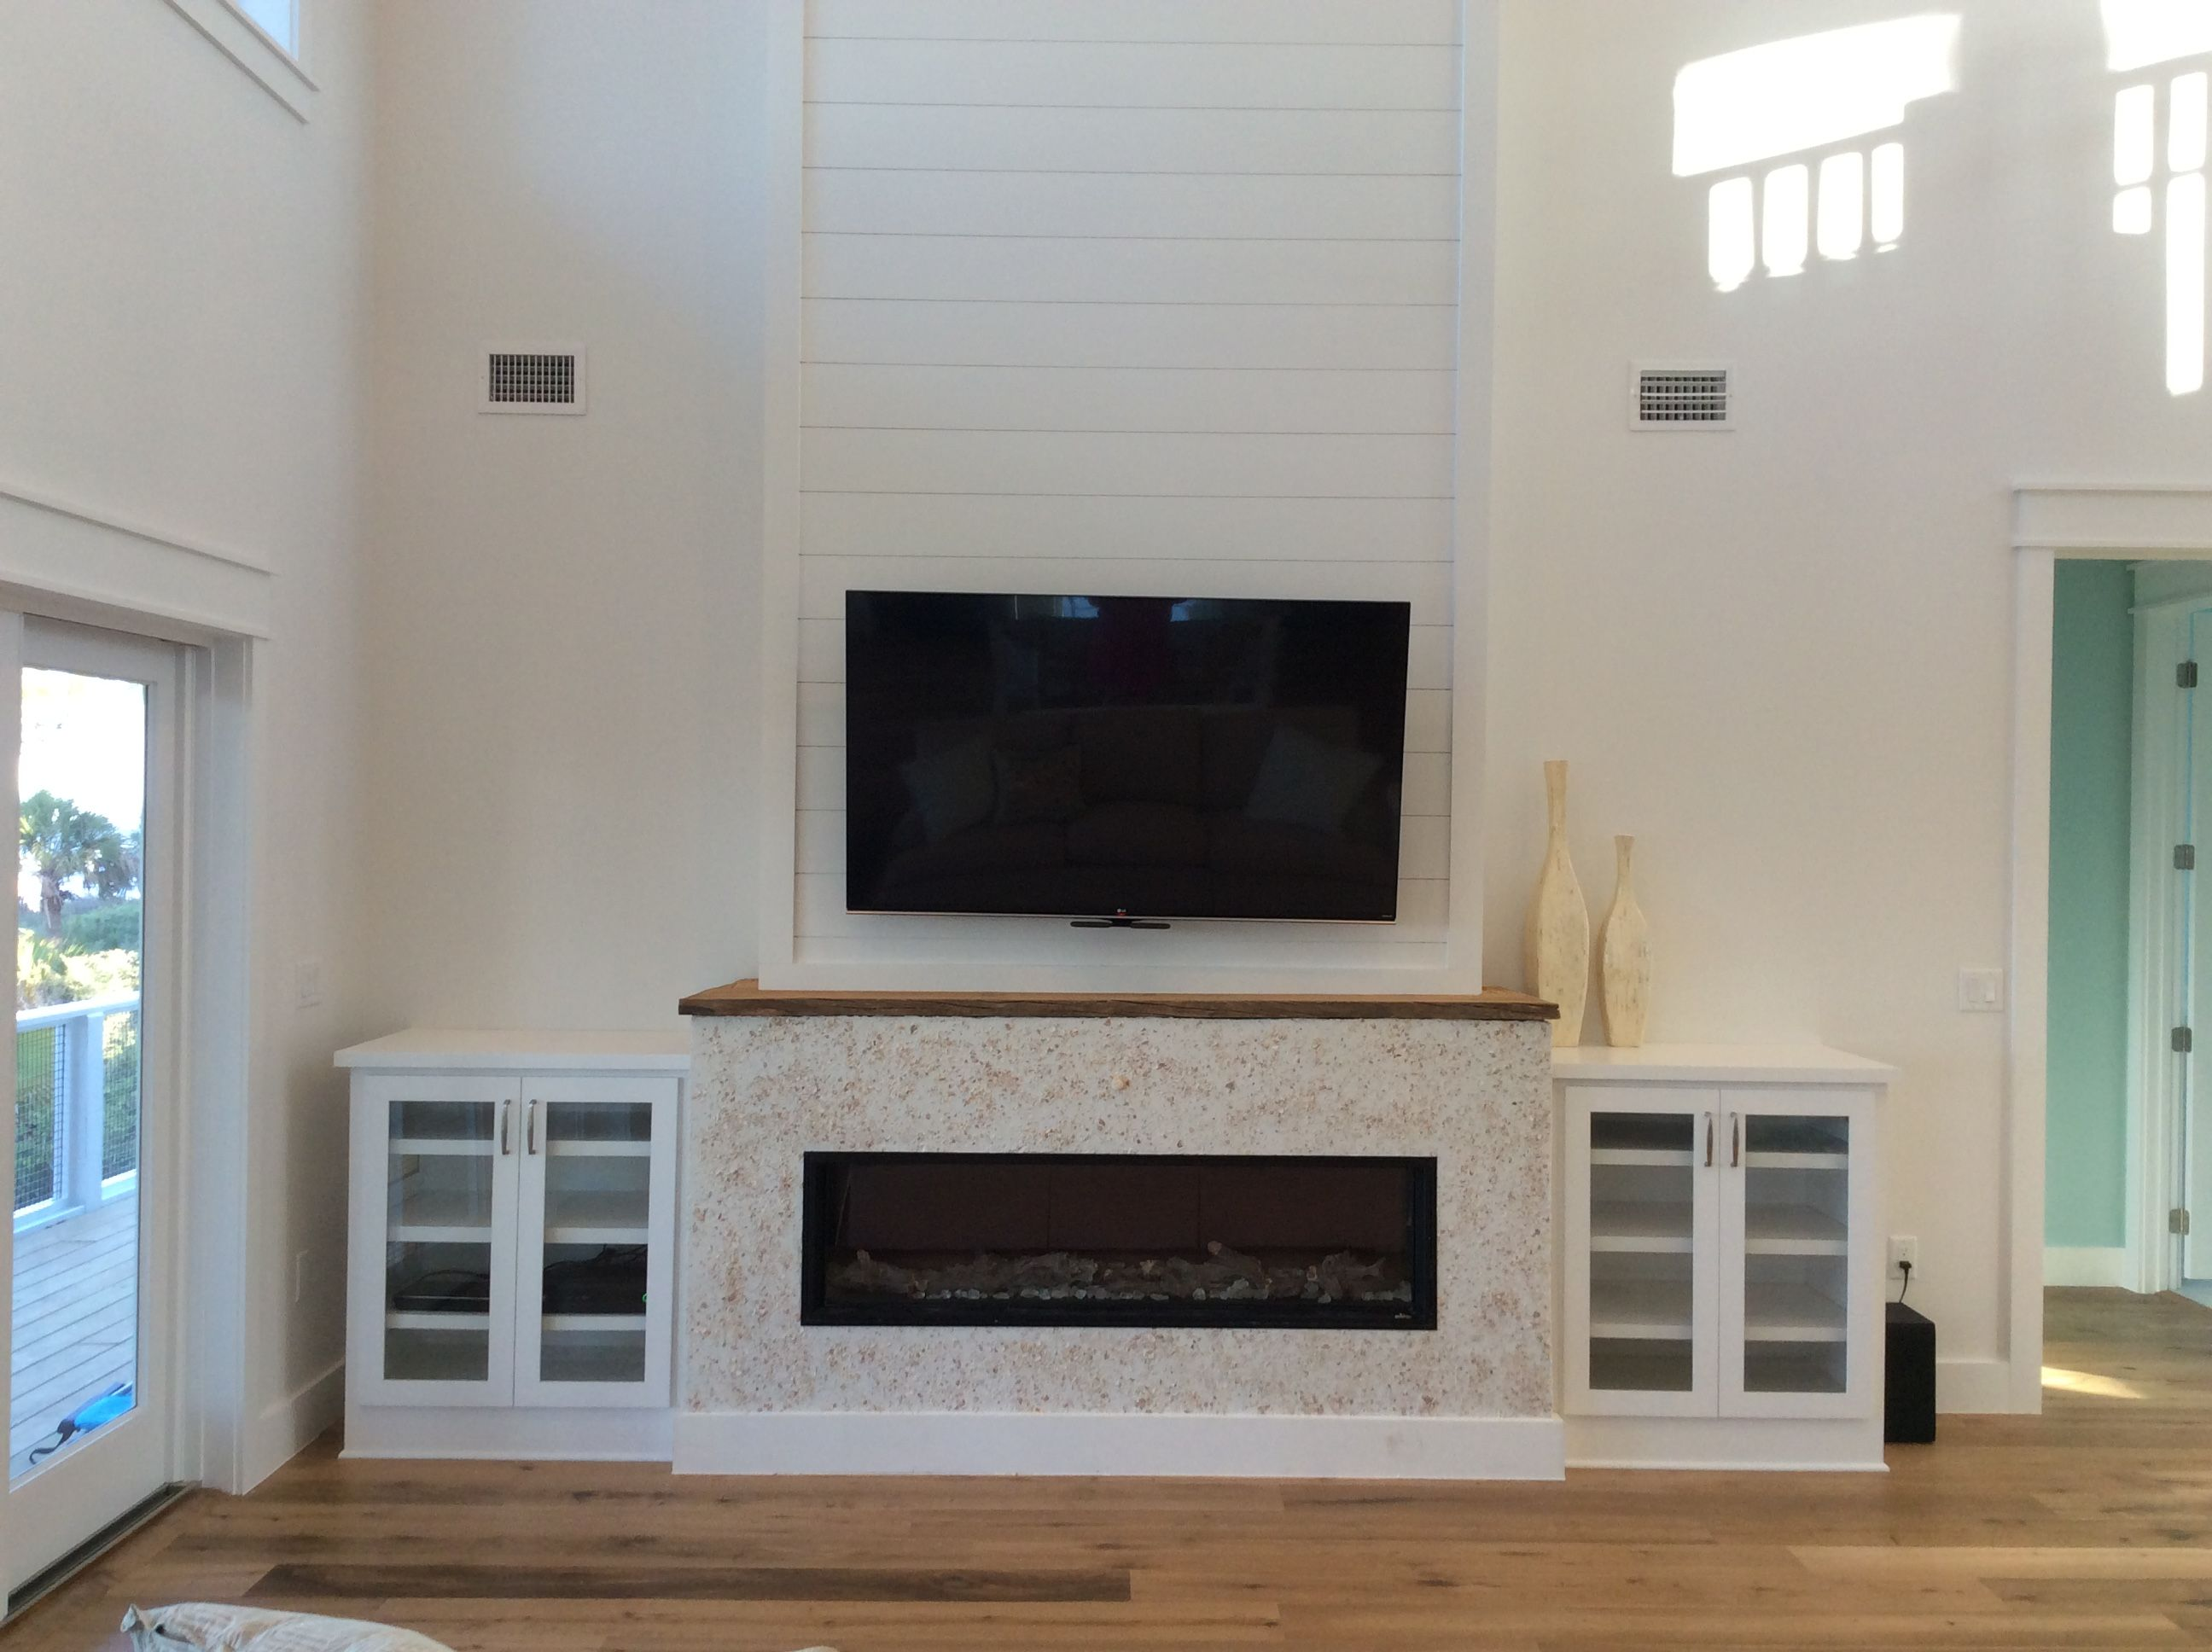 Image Result For Fireplace Barn Beam Mantel Tv Above